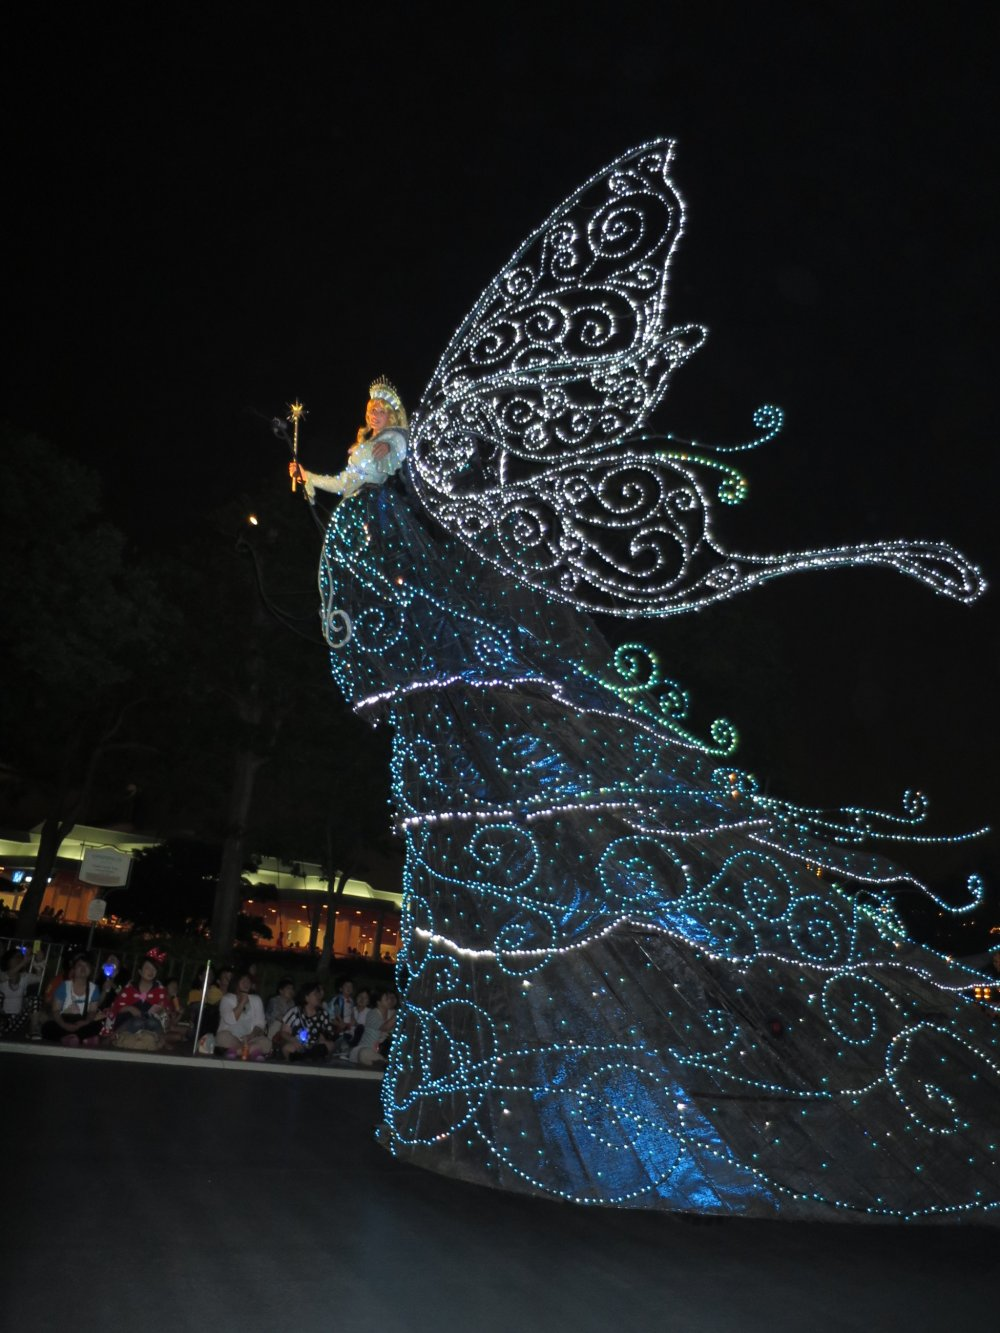 Tokyo Disneyland's Electrical Parade: Blue Fairy